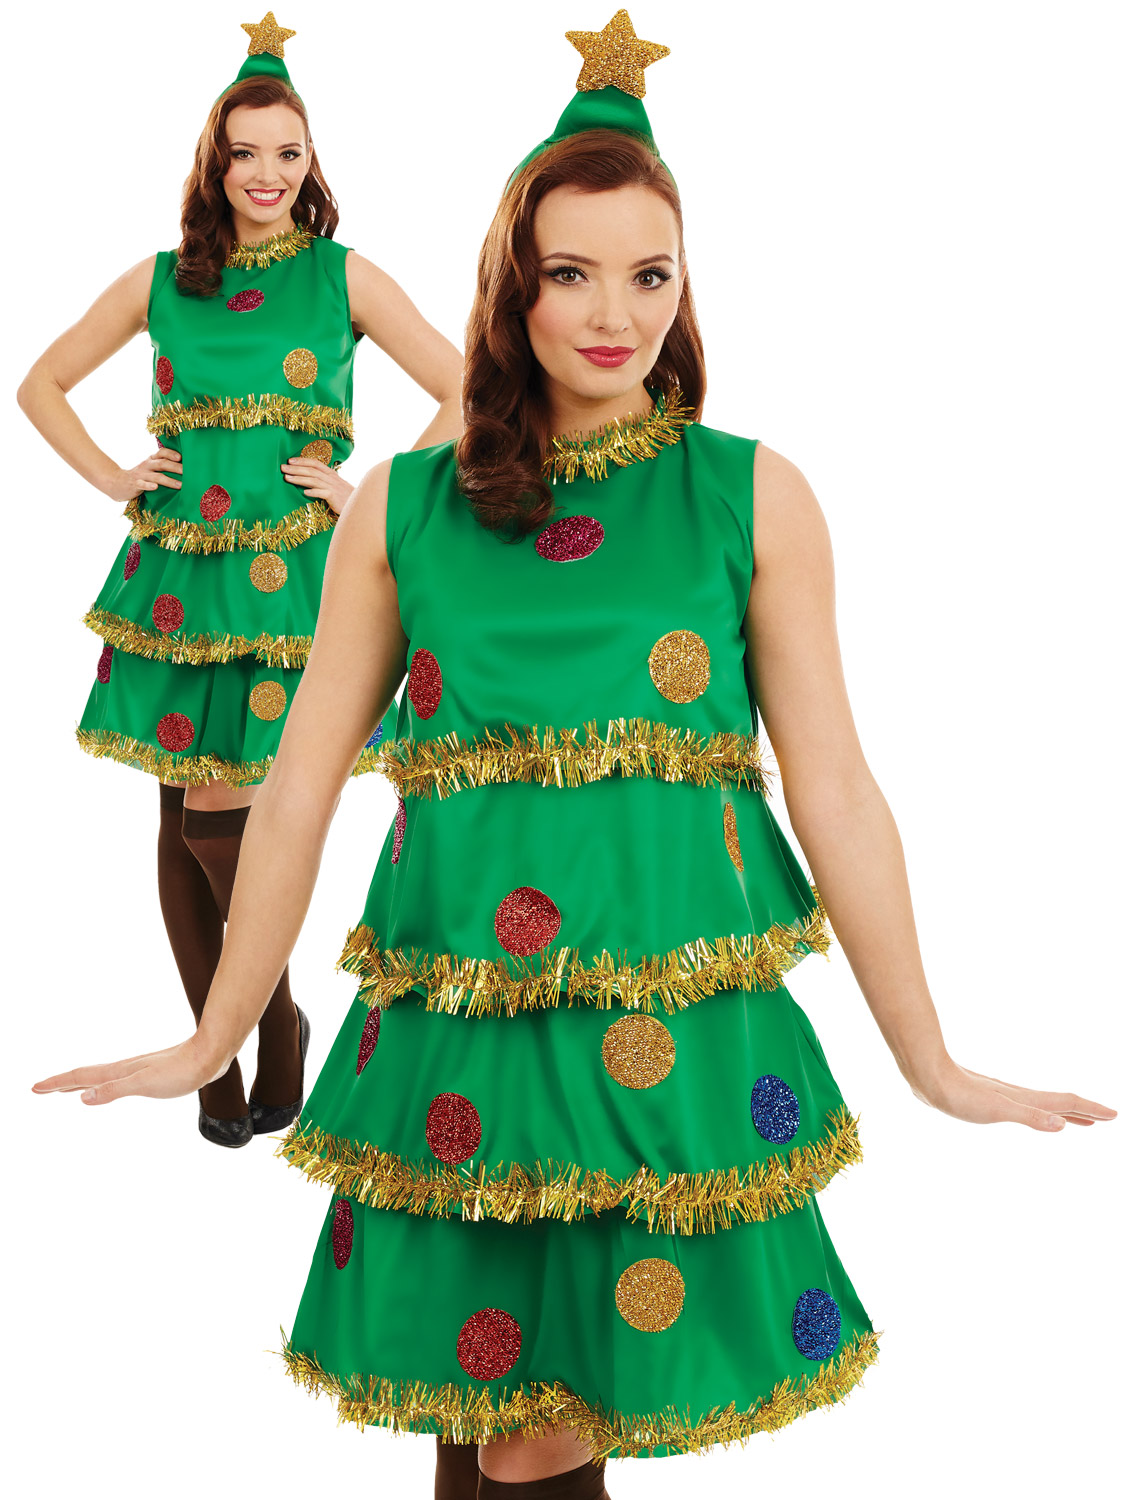 Ladies christmas tree lady costume adult fun xmas party How to dress the perfect christmas tree